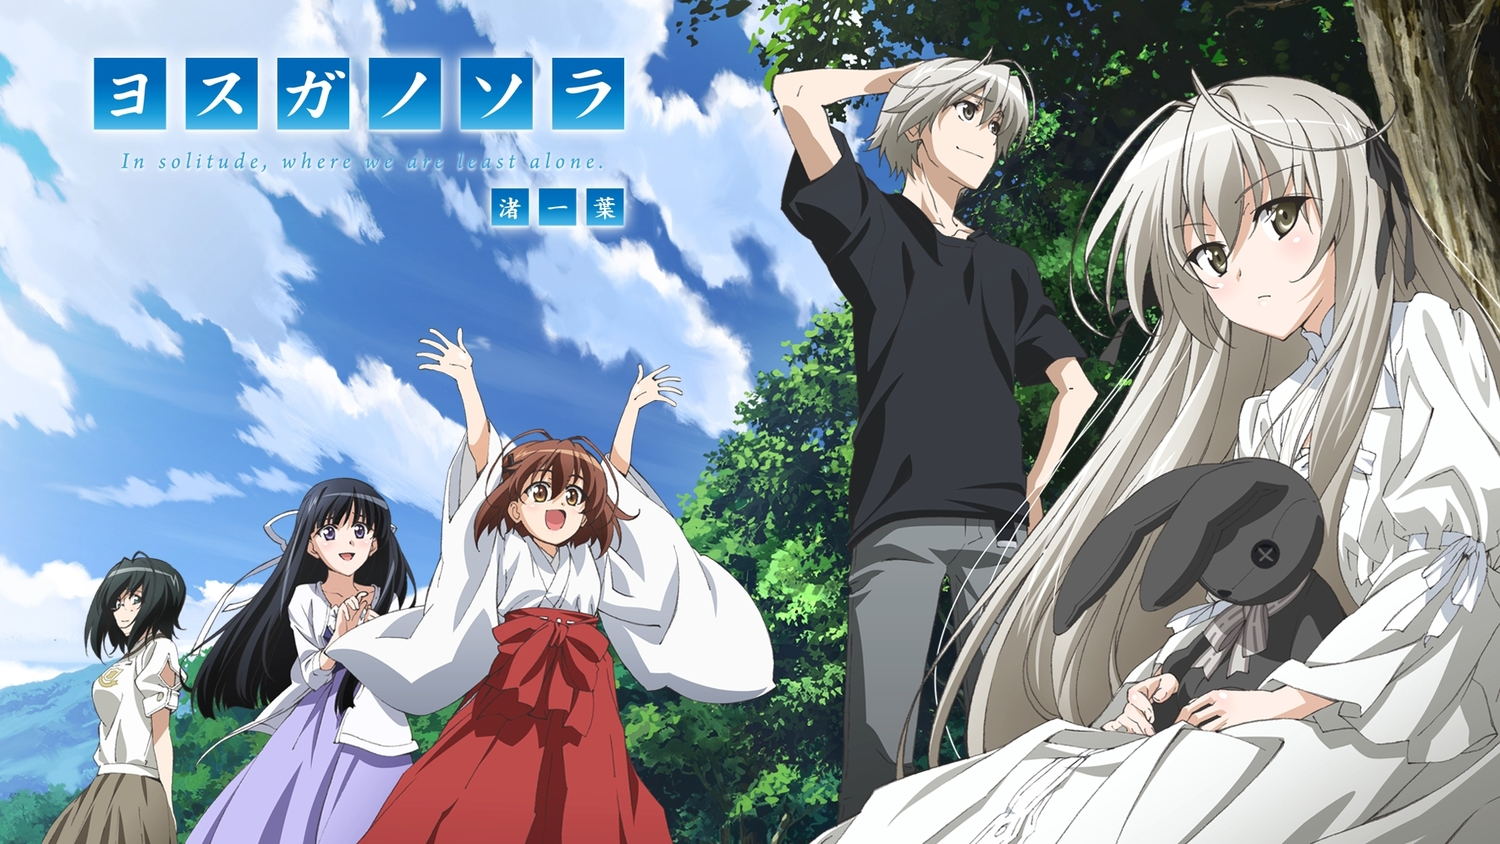 amatsume_akira black_hair brown_eyes brown_hair clouds glasses gray_eyes gray_hair group japanese_clothes kasugano_haruka kasugano_sora logo male migiwa_kazuha miko purple_eyes short_hair sky tagme_(artist) teddy_bear yorihime_nao yosuga_no_sora